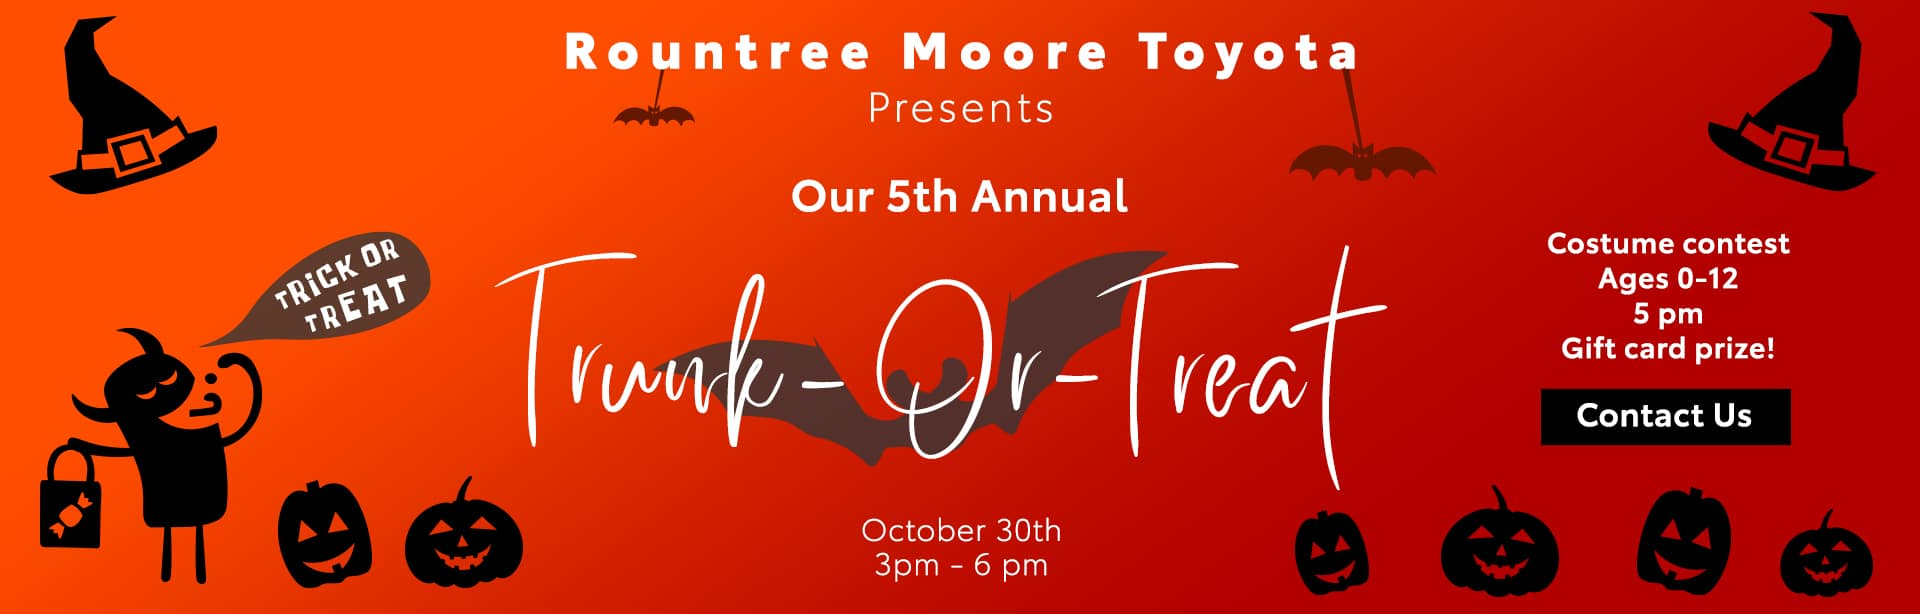 Rountree Moore Toyota Presents Our 5th Annual Trunk or Treat